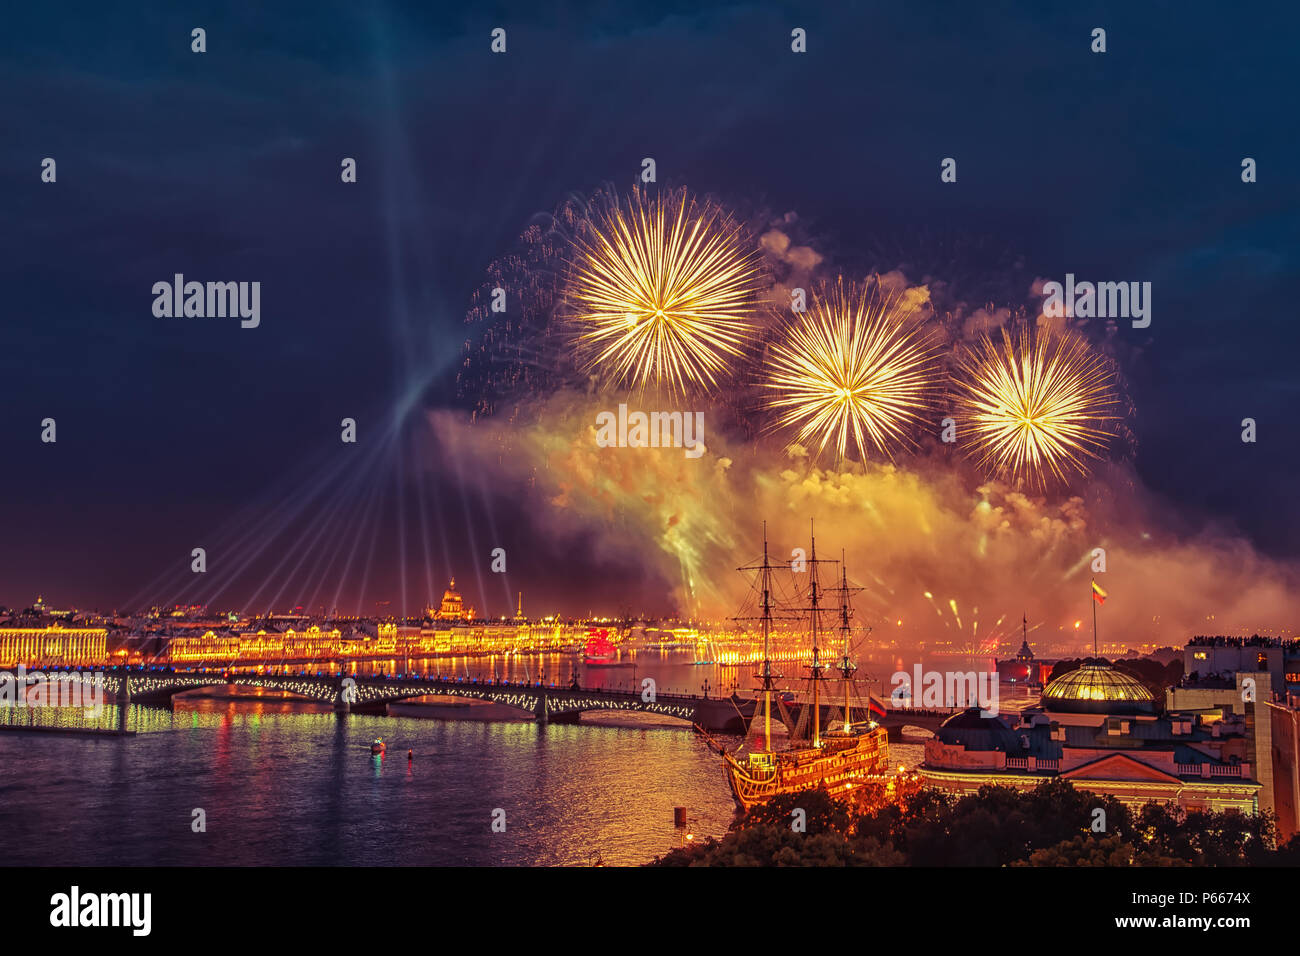 Festive fireworks in St. Petersburg. Scarlet Sails celebration in St Petersburg. - Stock Image